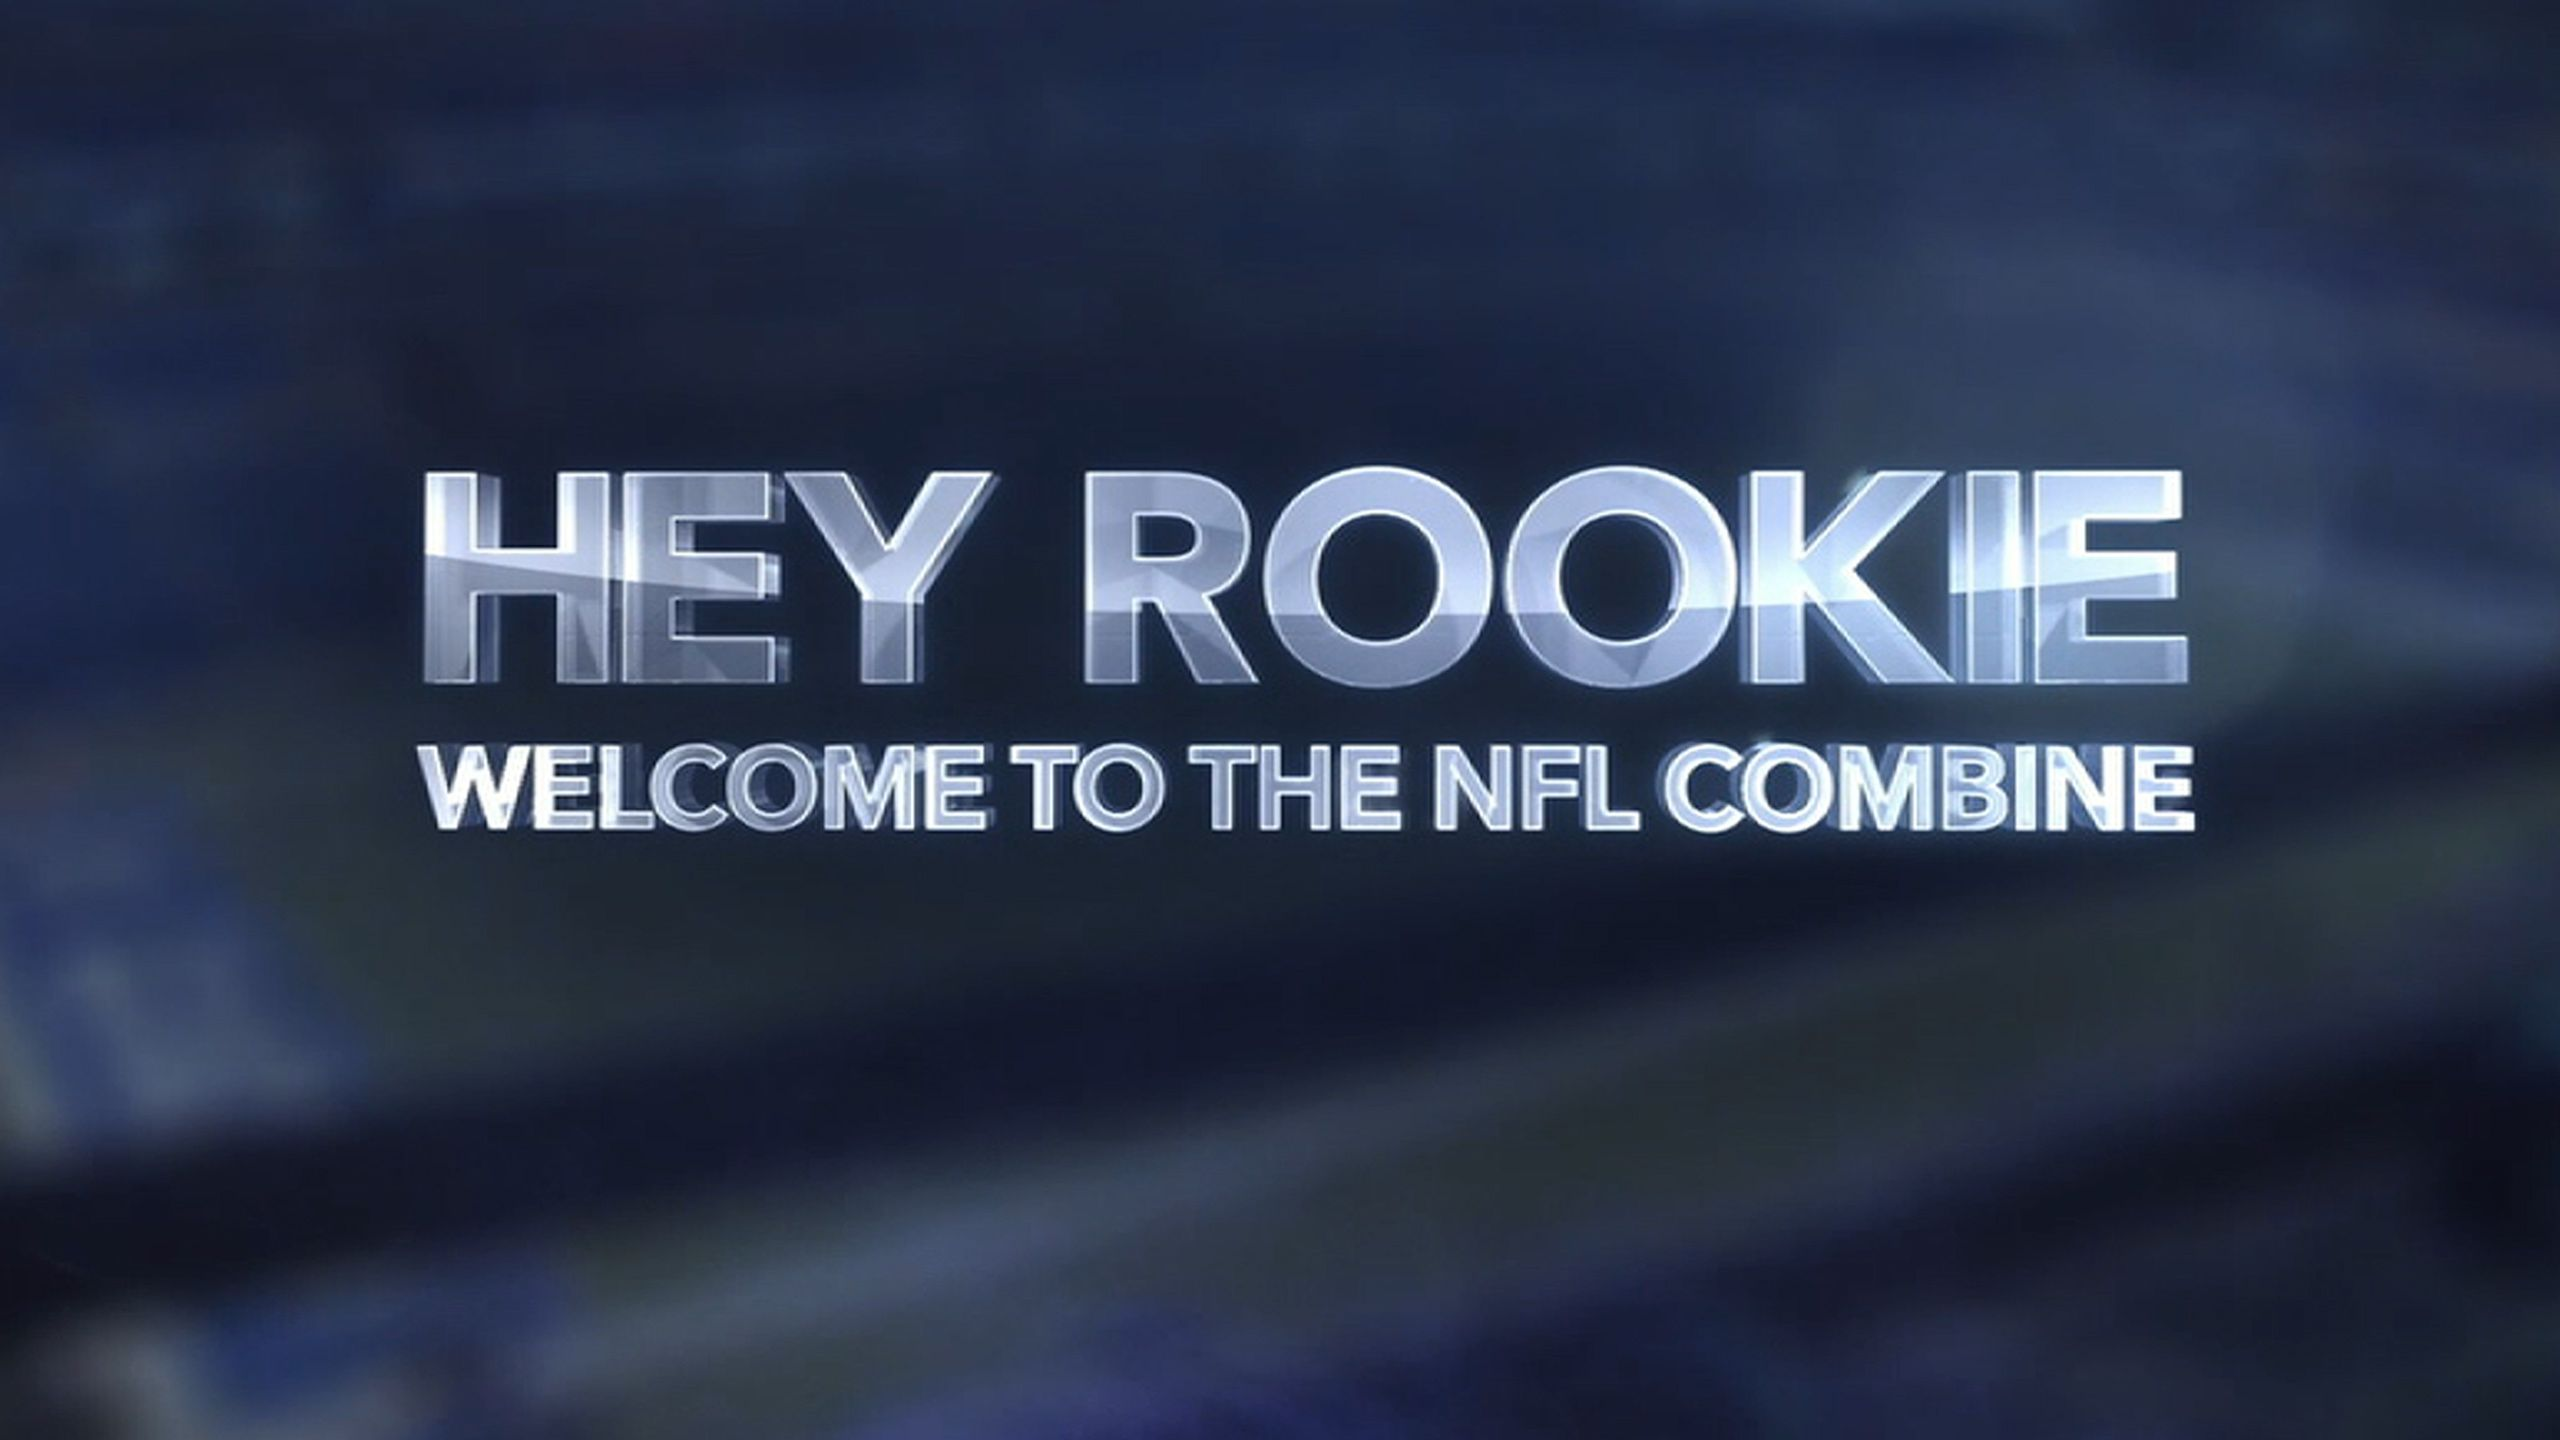 Hey Rookie: Welcome to the NFL (Episode 2)